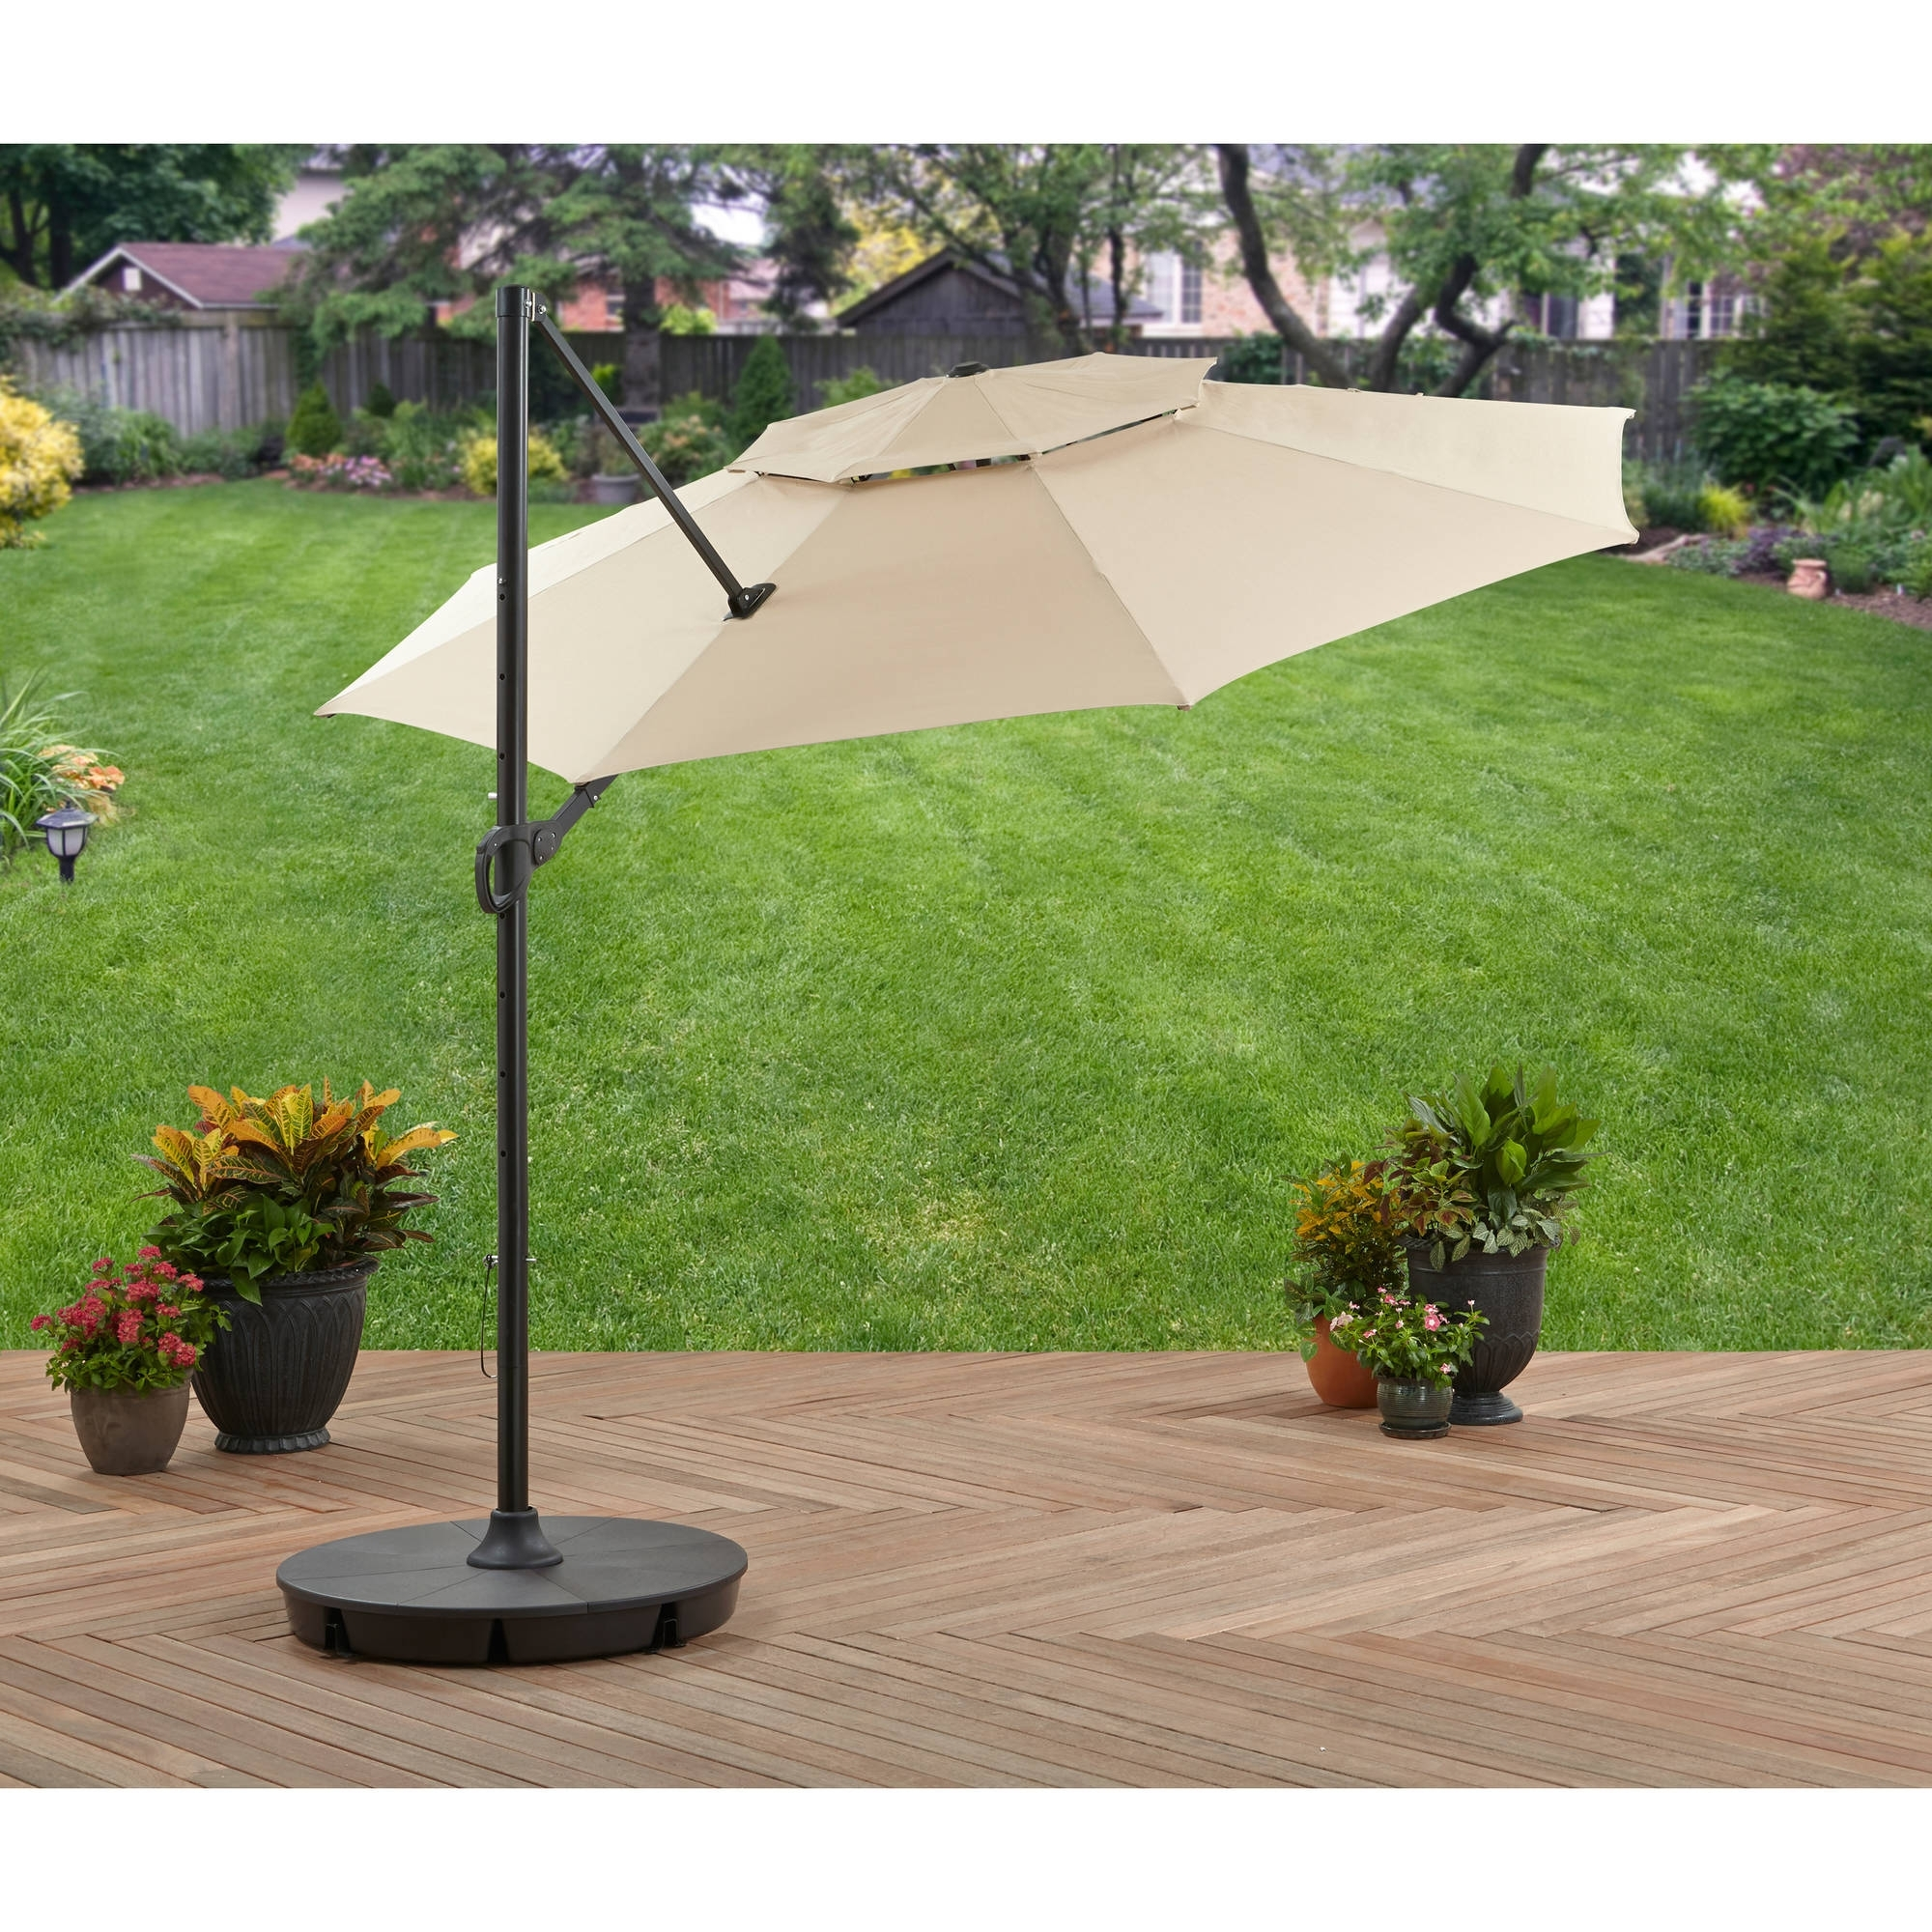 Famous Better Homes And Gardens 11' Offset Umbrella With Base, Tan For Walmart Umbrellas Patio (Gallery 15 of 20)